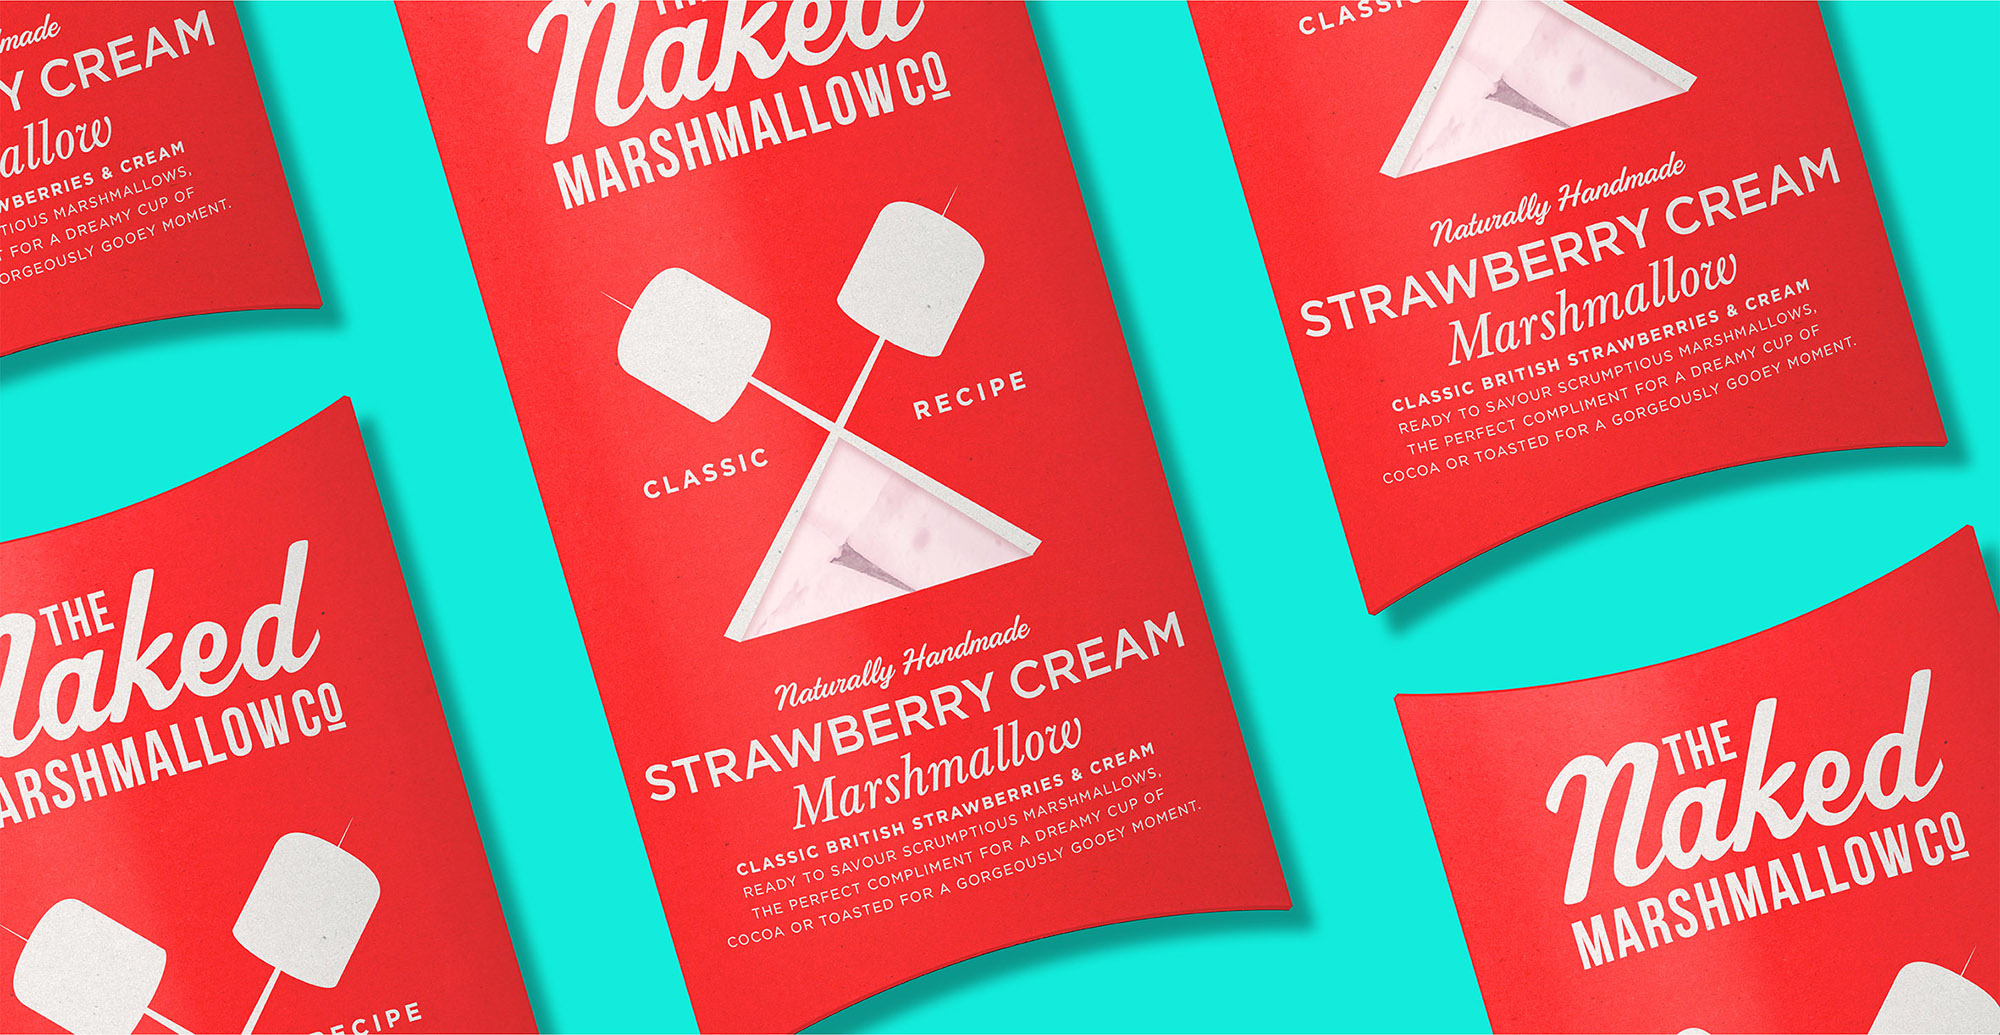 Branding and packaging design for confectionary brand The Naked Marshmallow Co by Design Happy London - Strawberry Cream packaging design